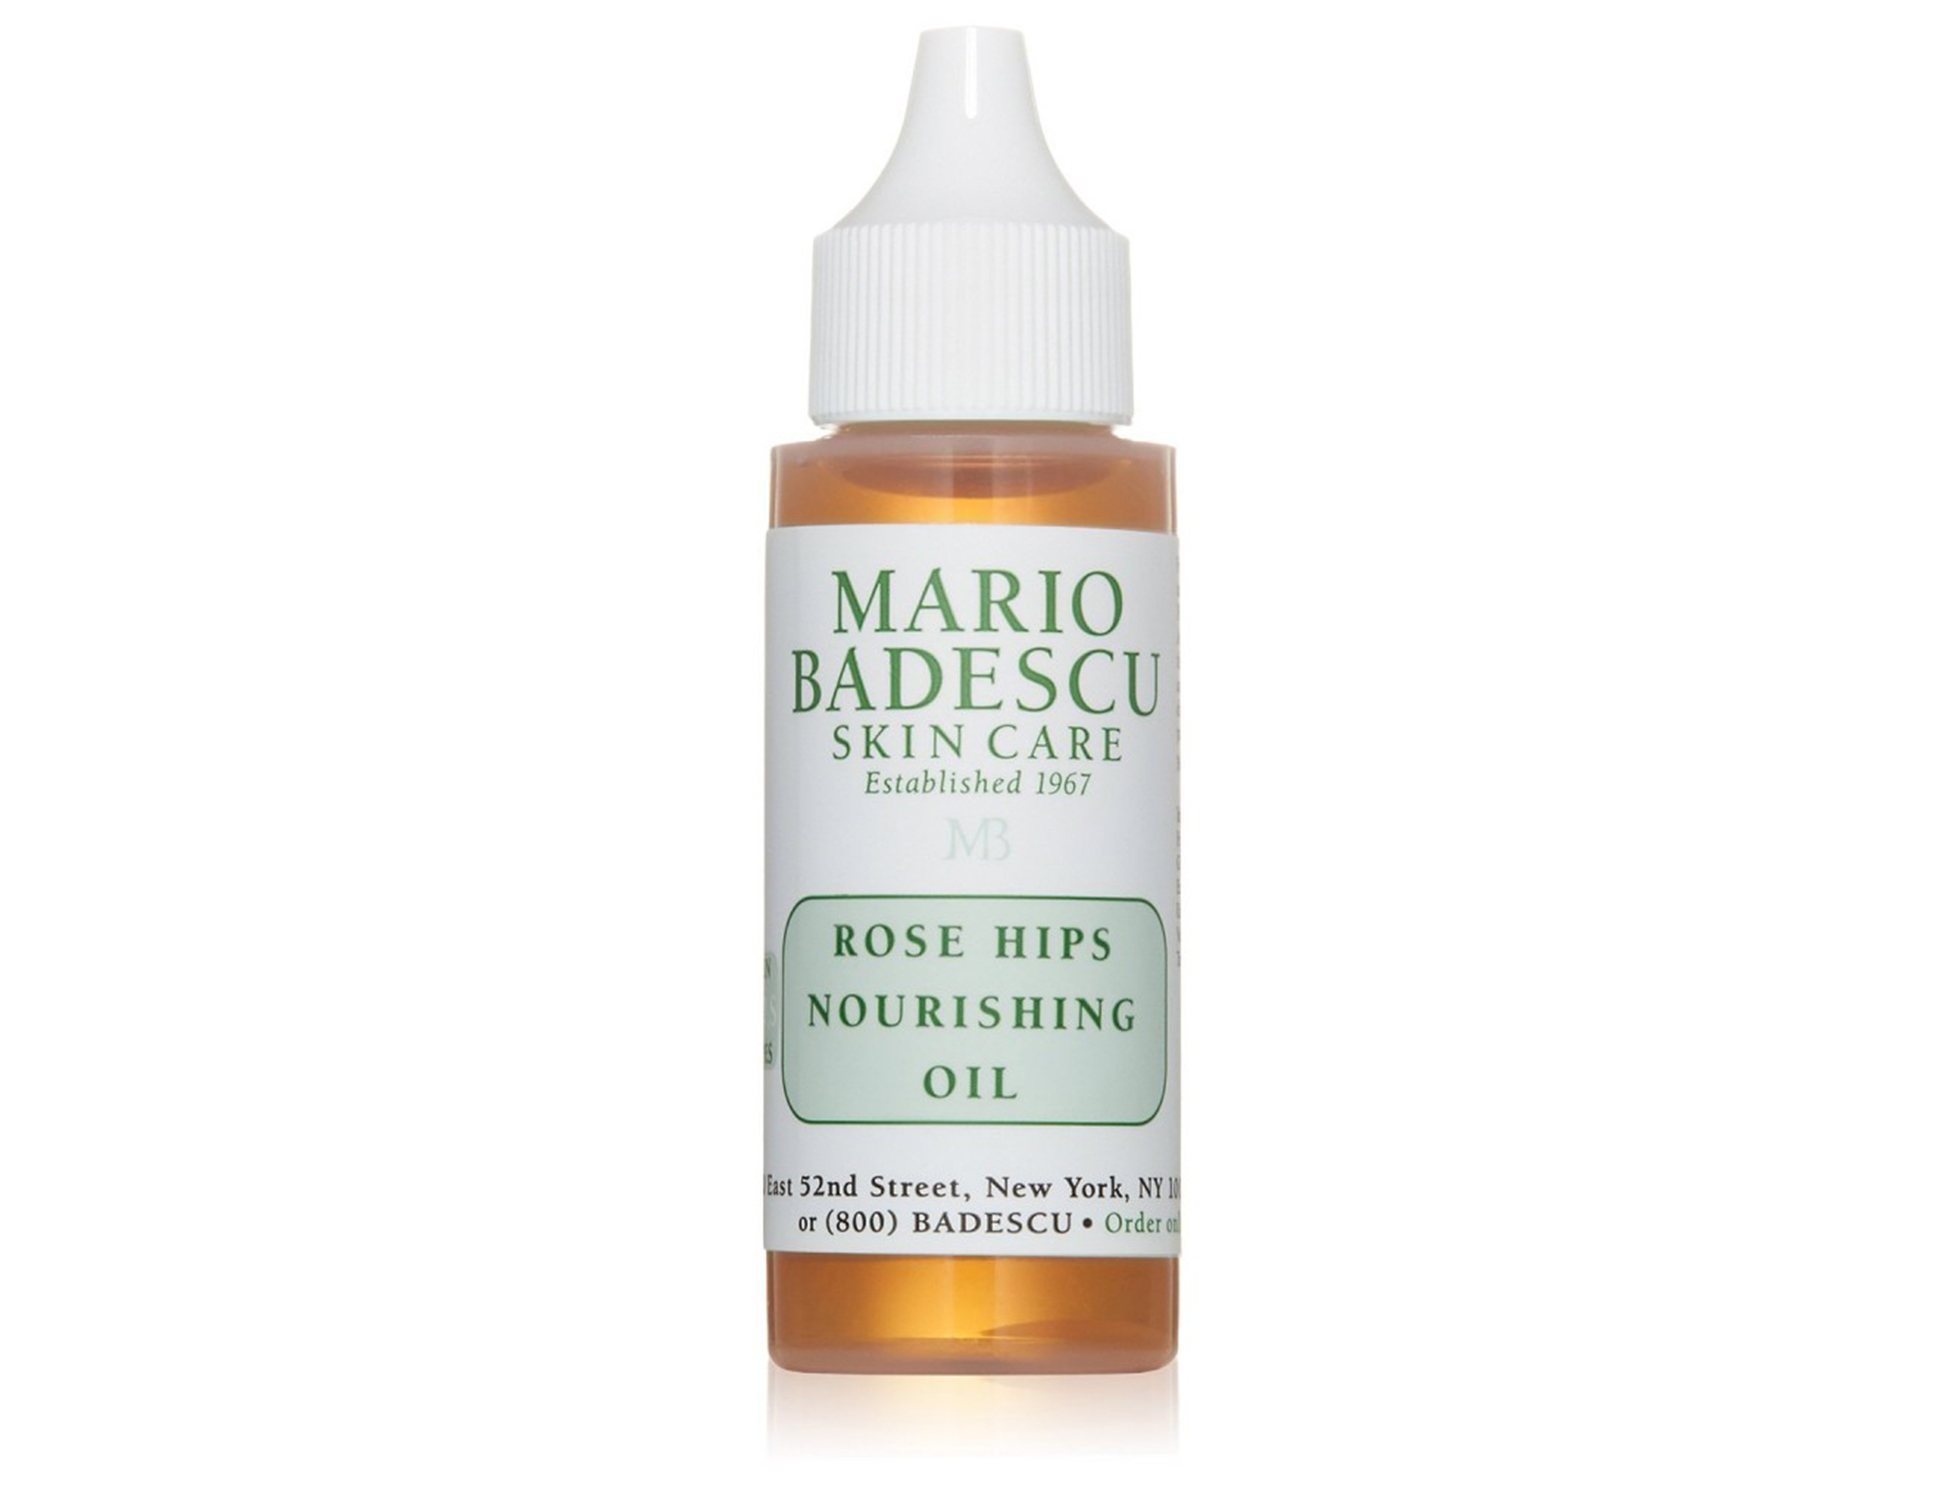 Rose Hips Nourishing Oil for Combination, Dry and Sensitive Skin